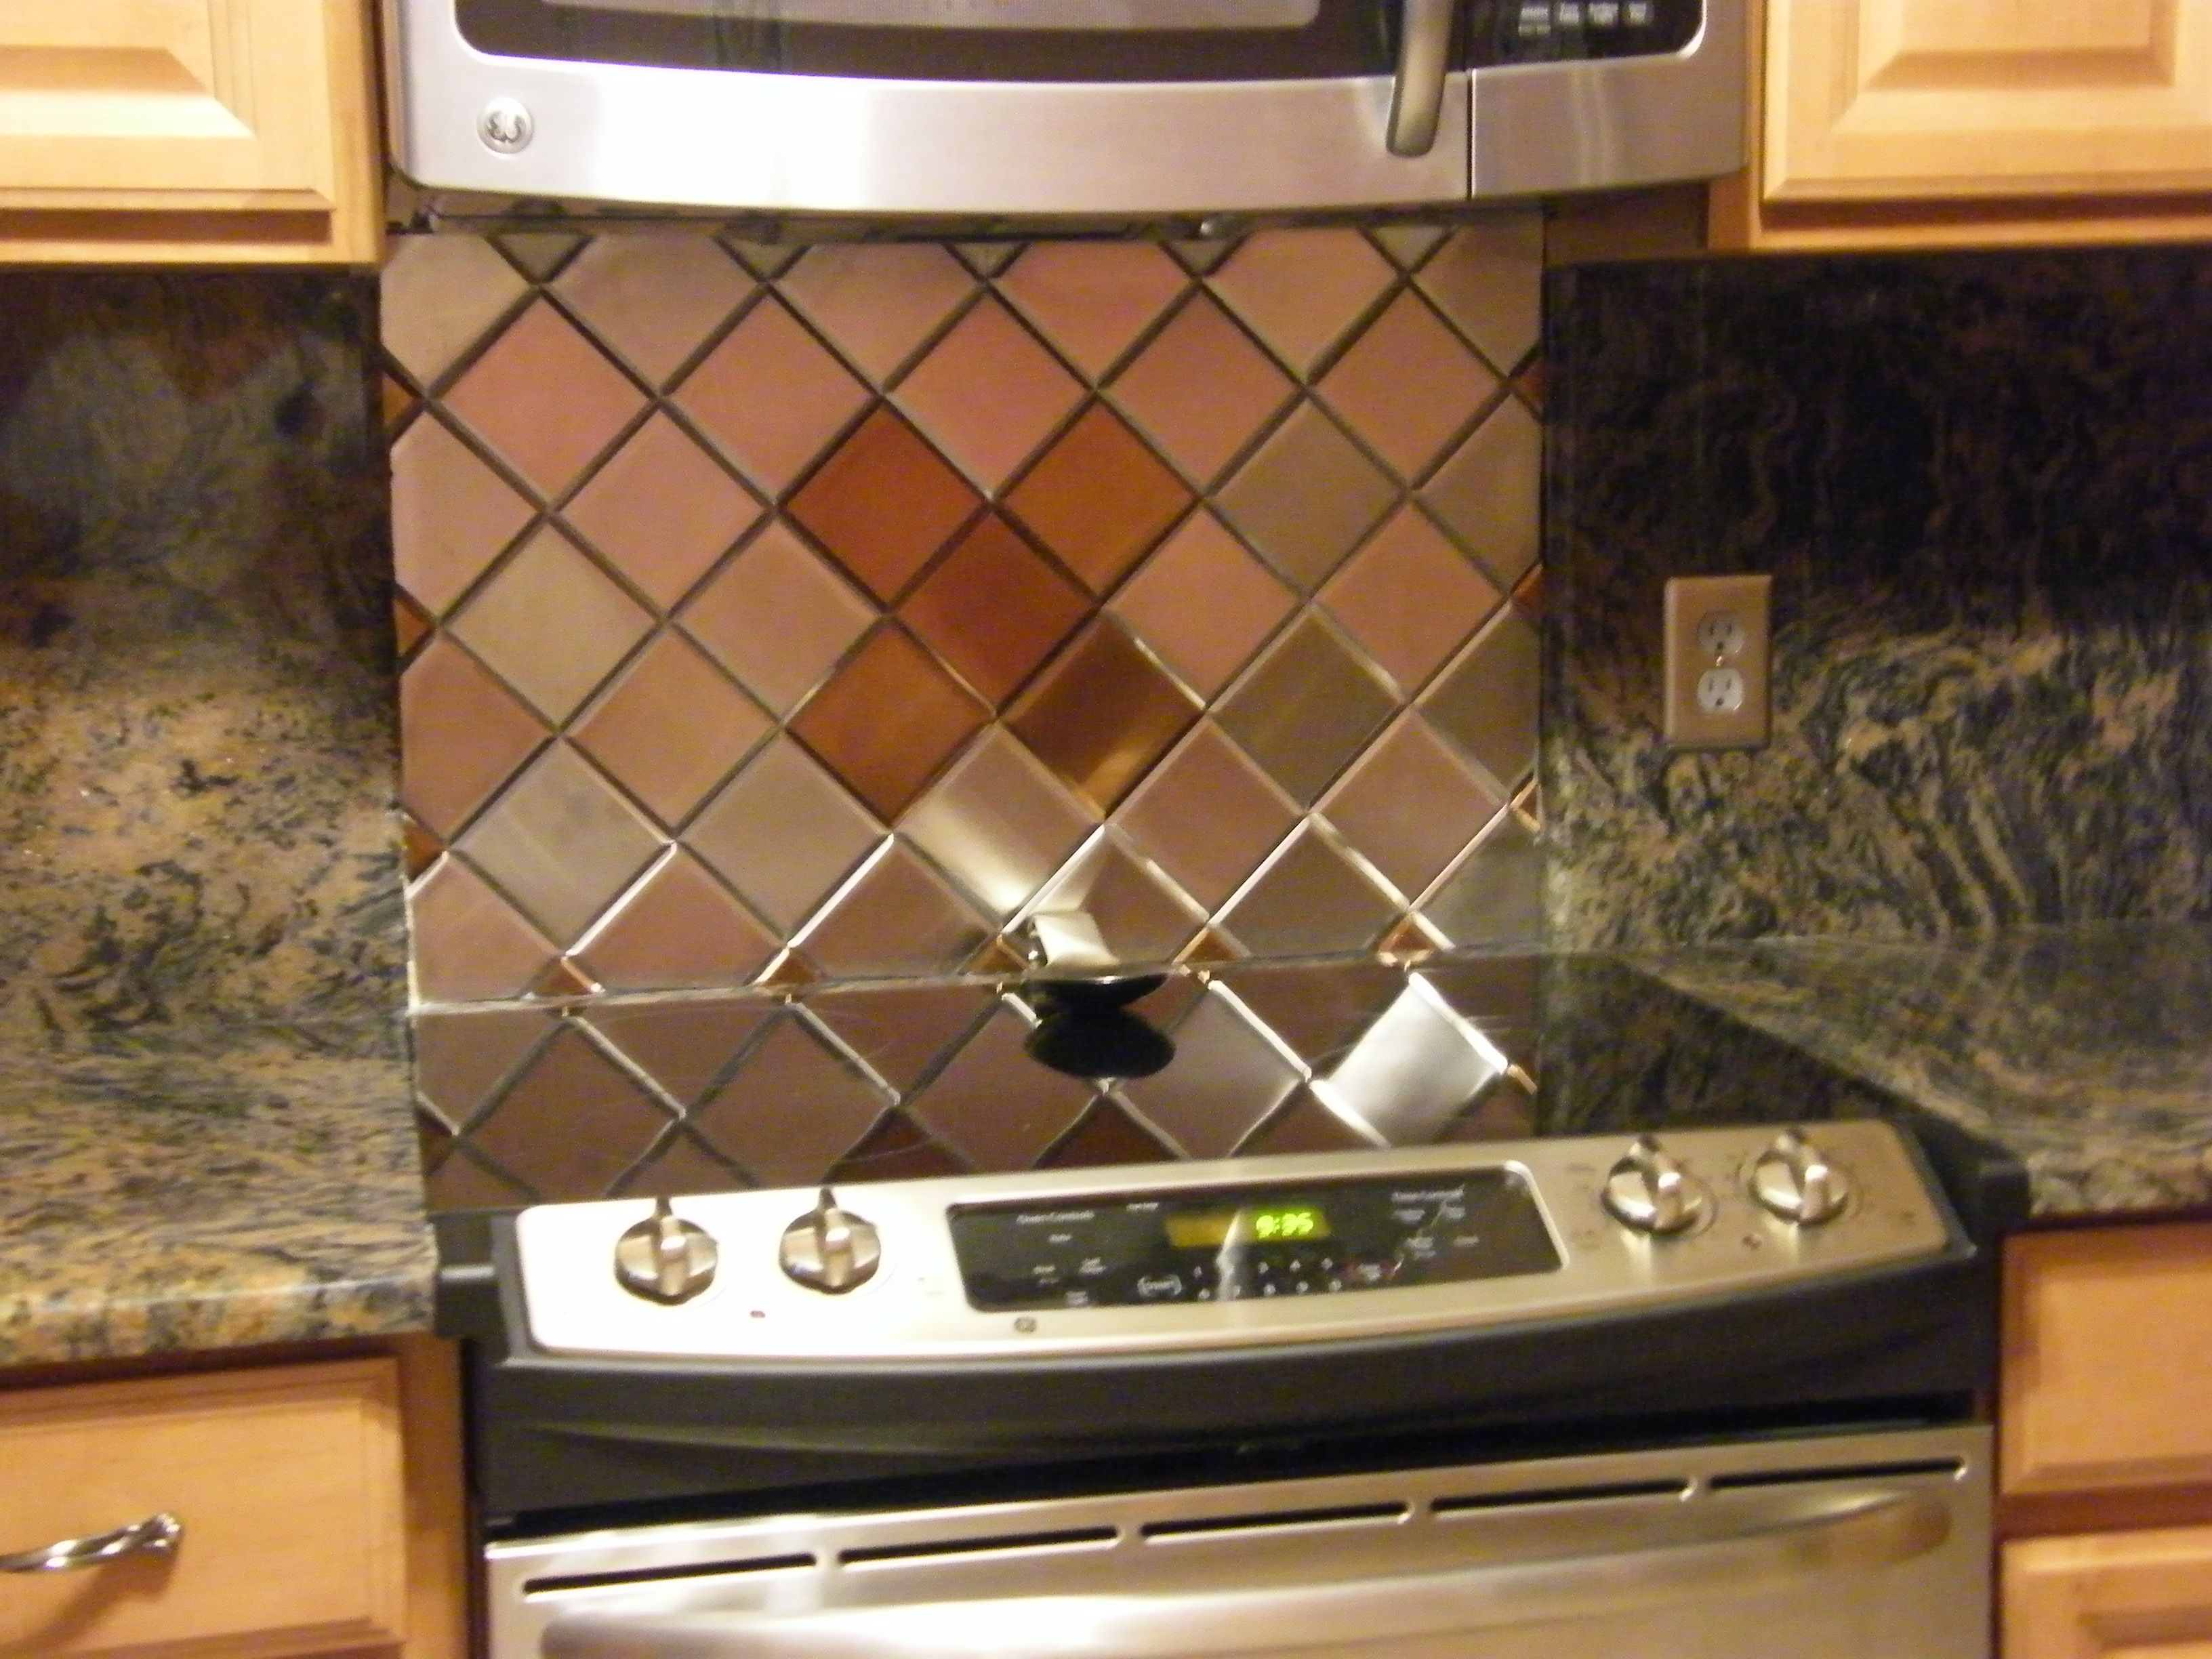 4 x 4 brushed stainless steel backsplash harlequin pattern x brushed stainless steel backsplash harlequin pattern integrated with x copper tiles dailygadgetfo Image collections